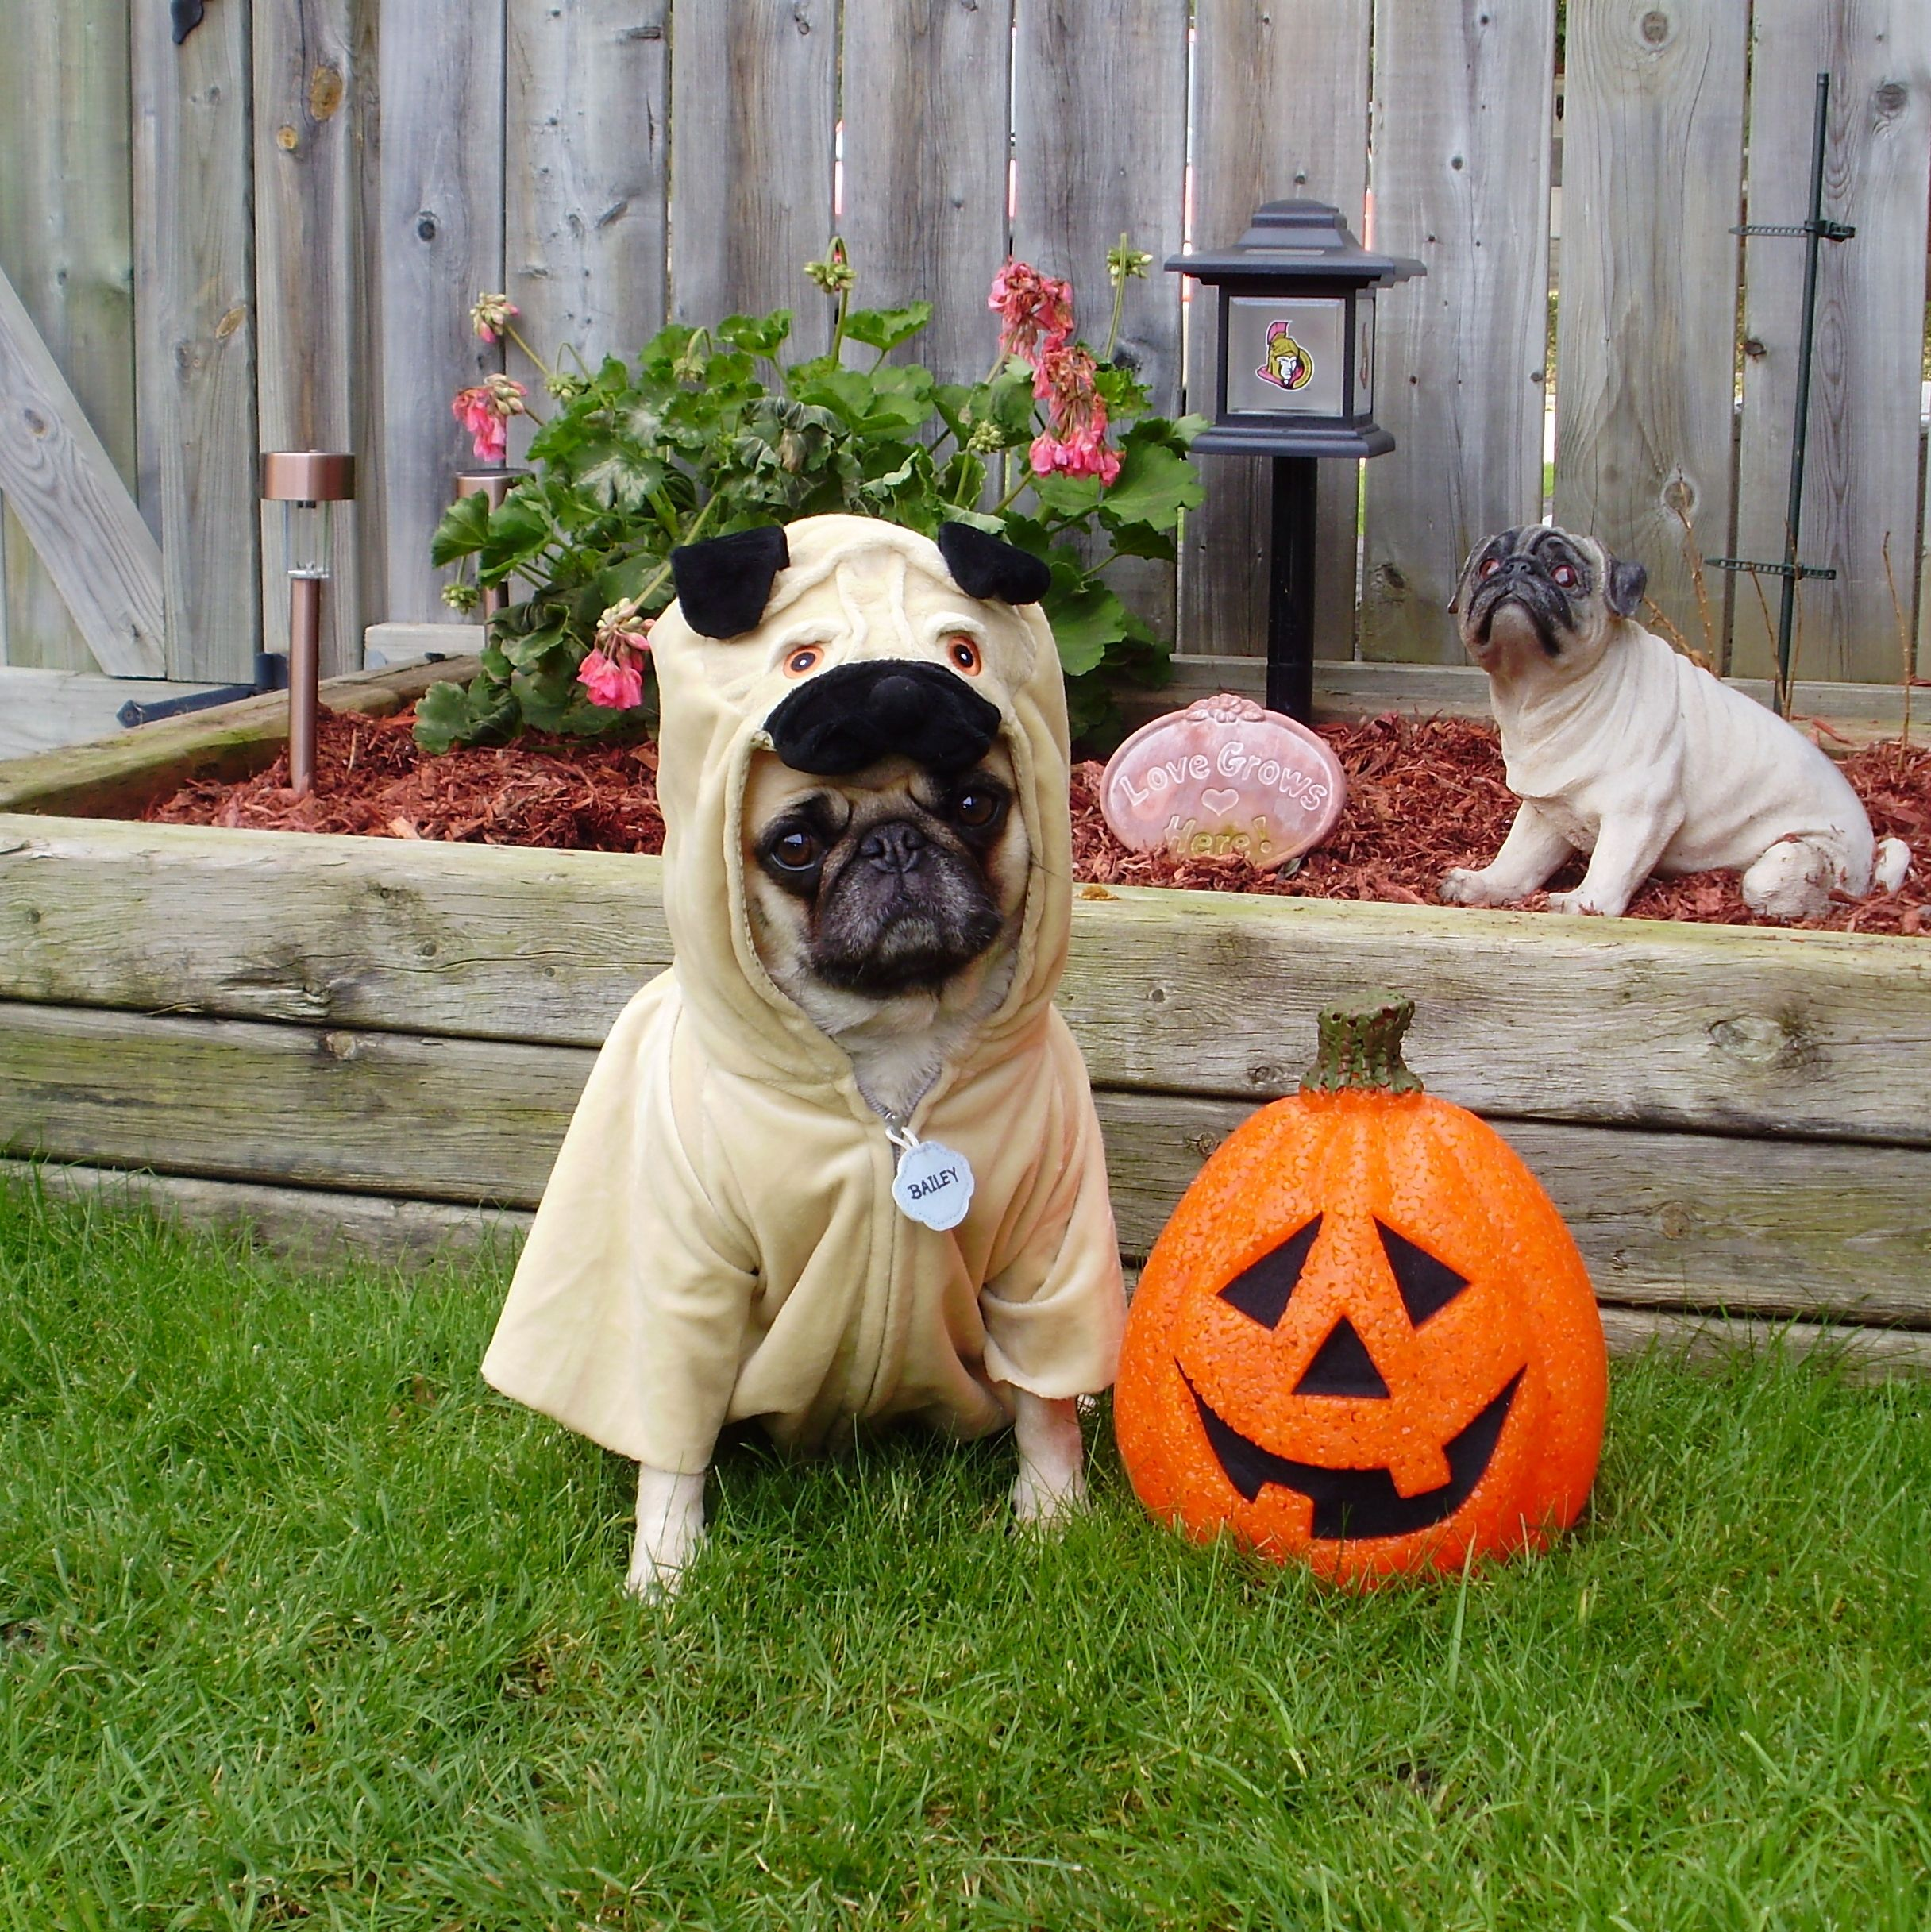 pug wallpaper screensaver background our pug bailey puggins happy halloween - Pugs Halloween